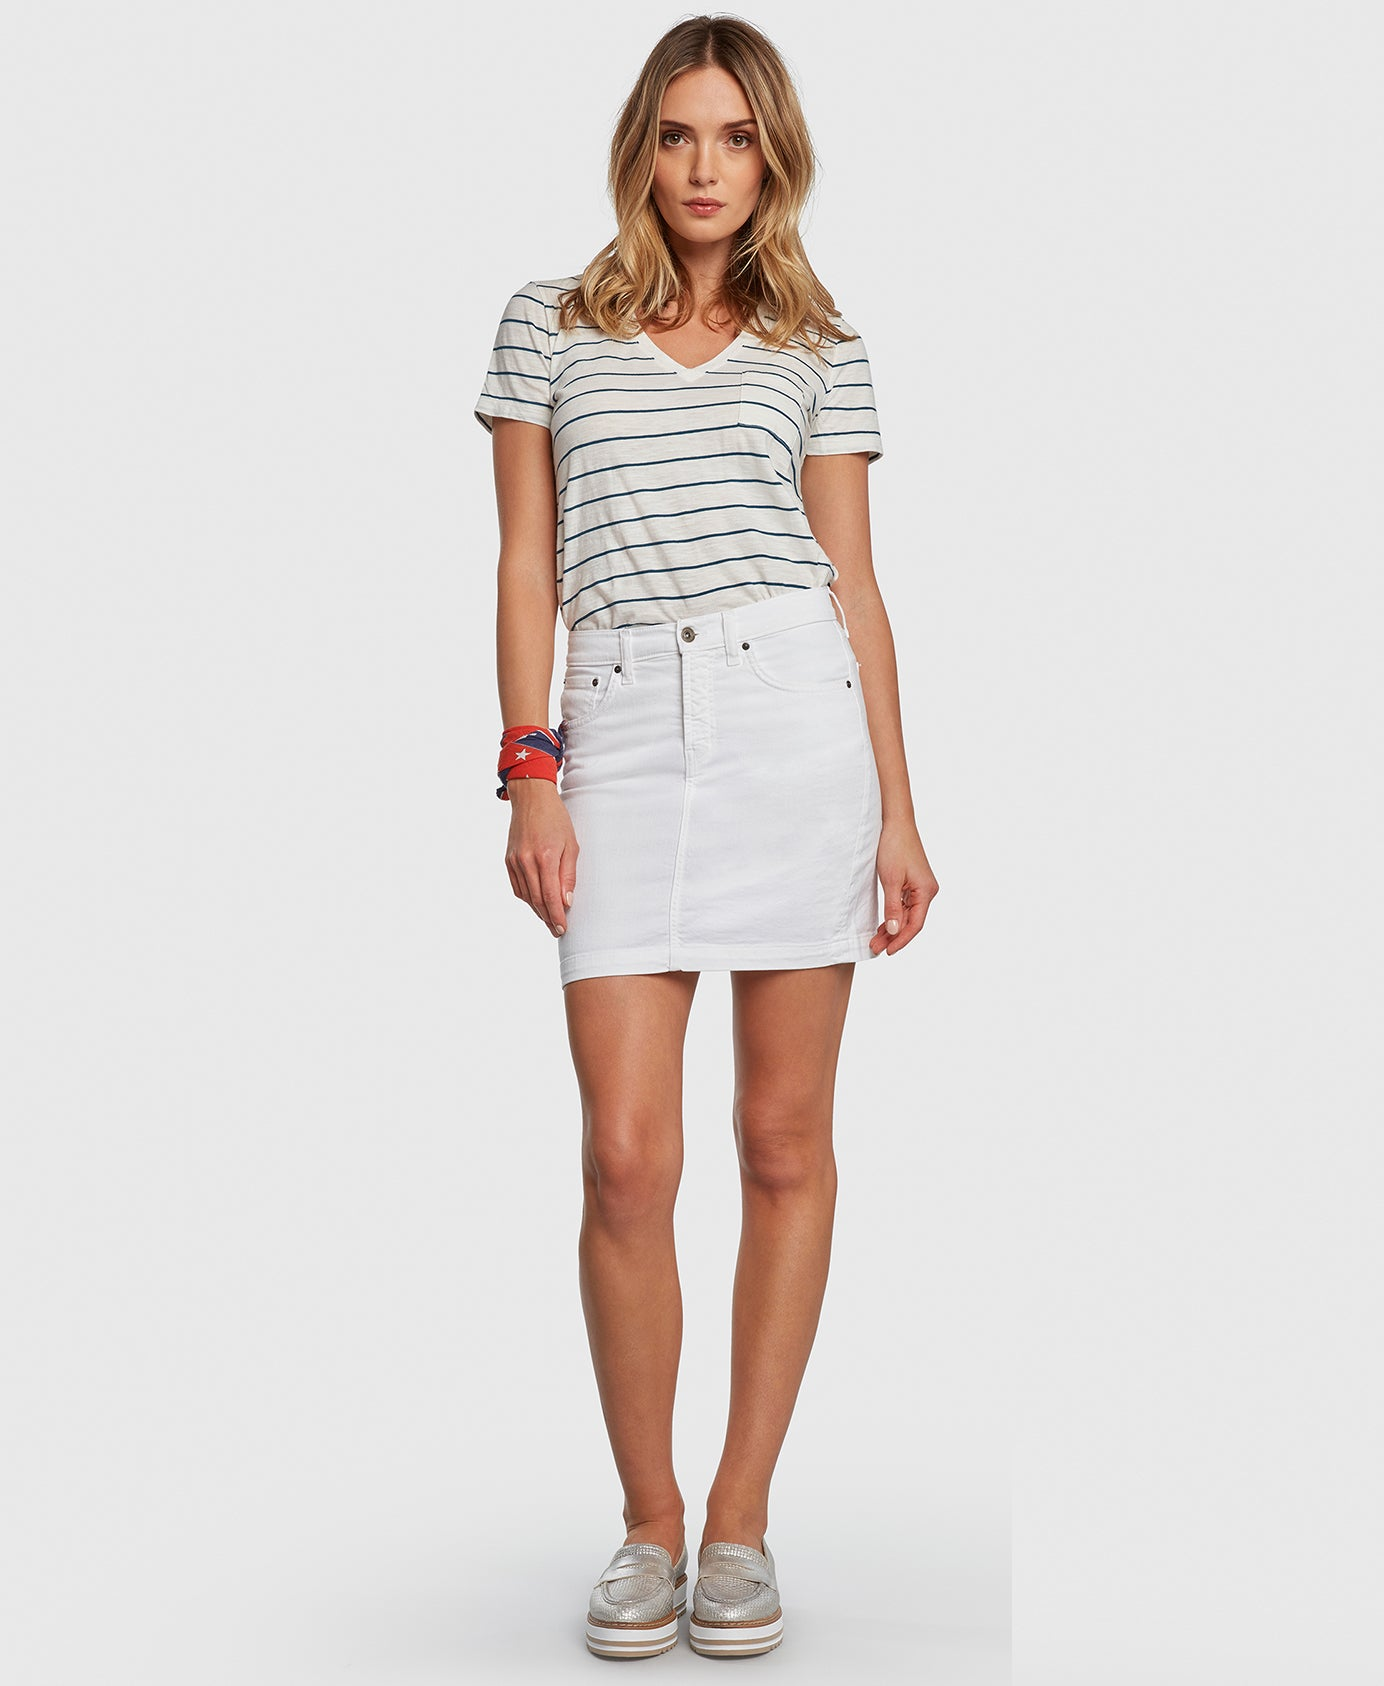 CHARMER in White Principle denim skirt